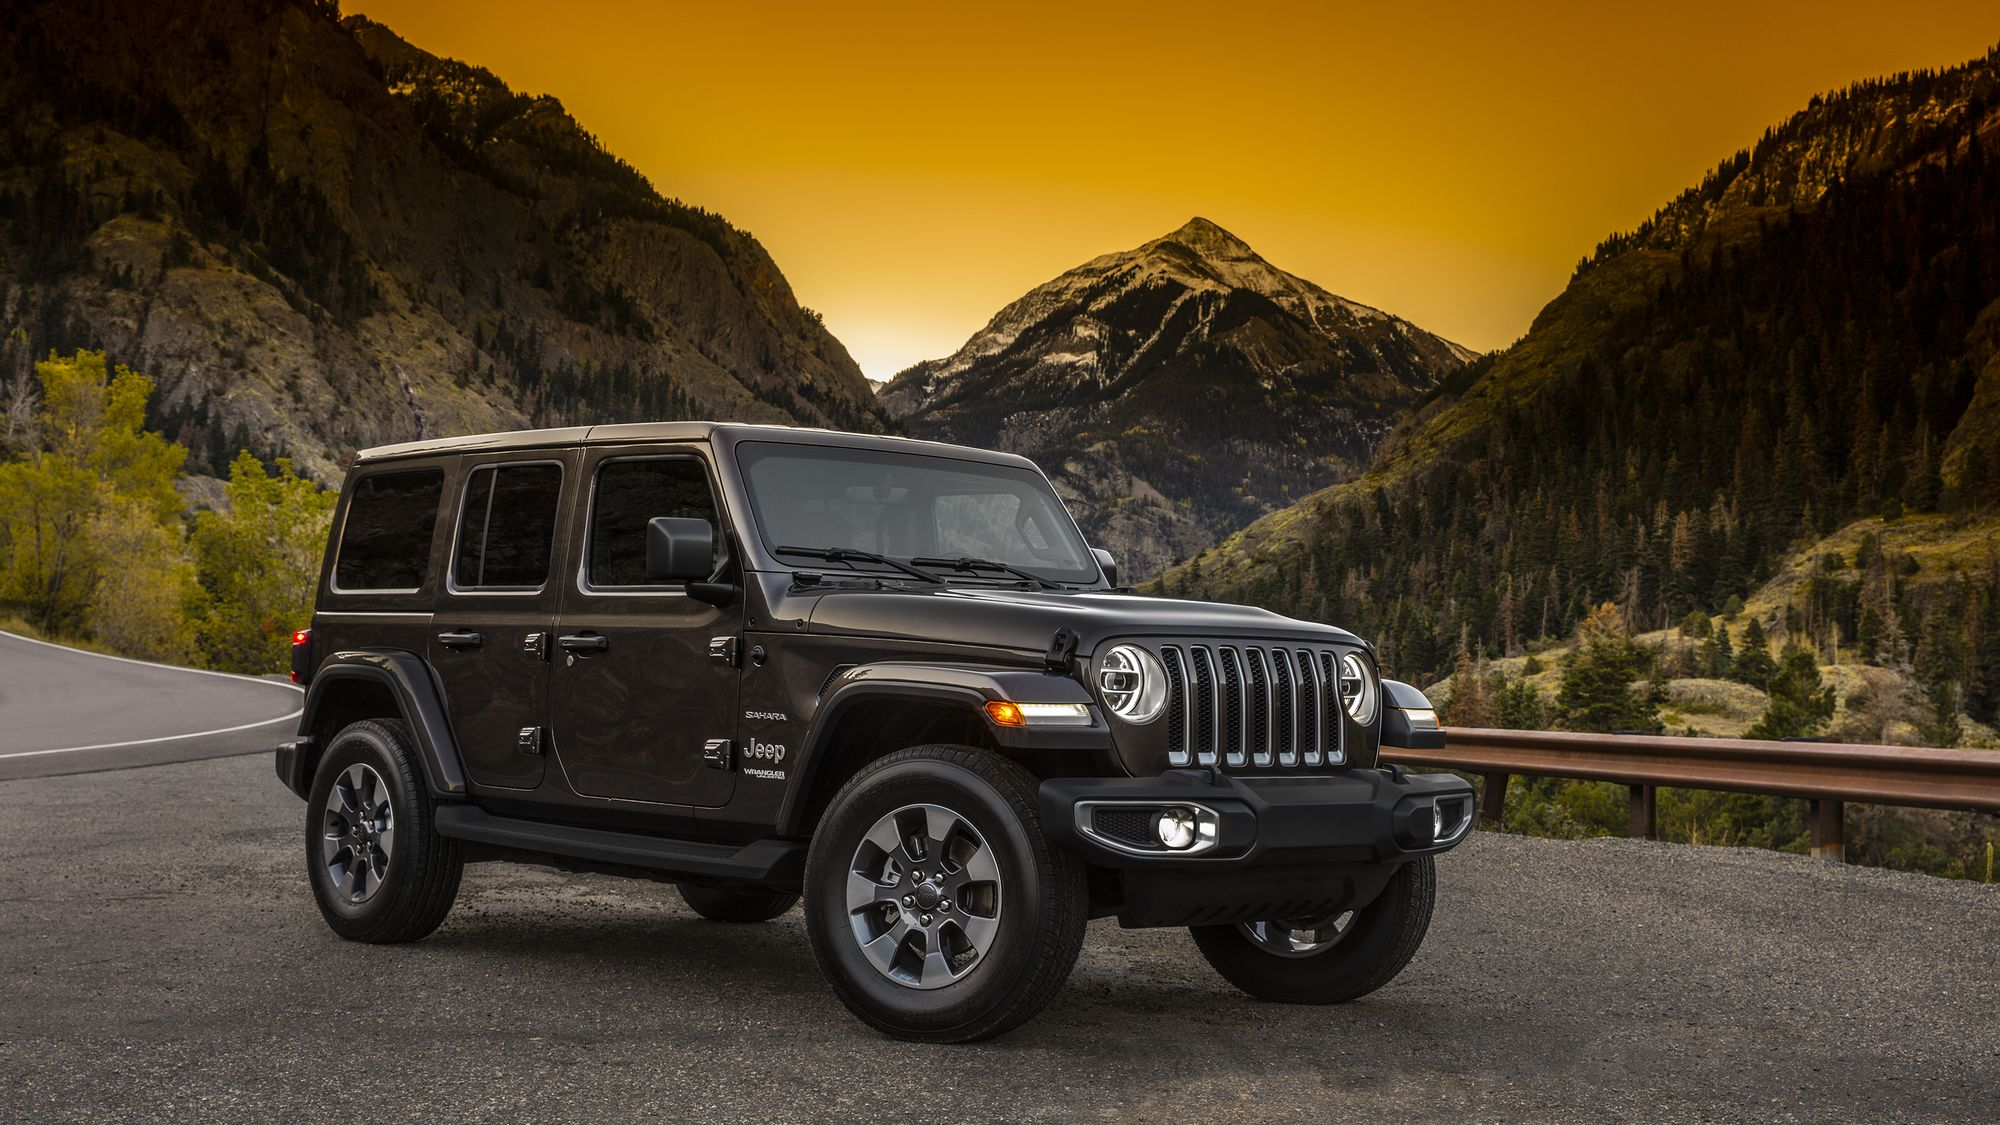 Jeep Wrangler scores one-star safety rating